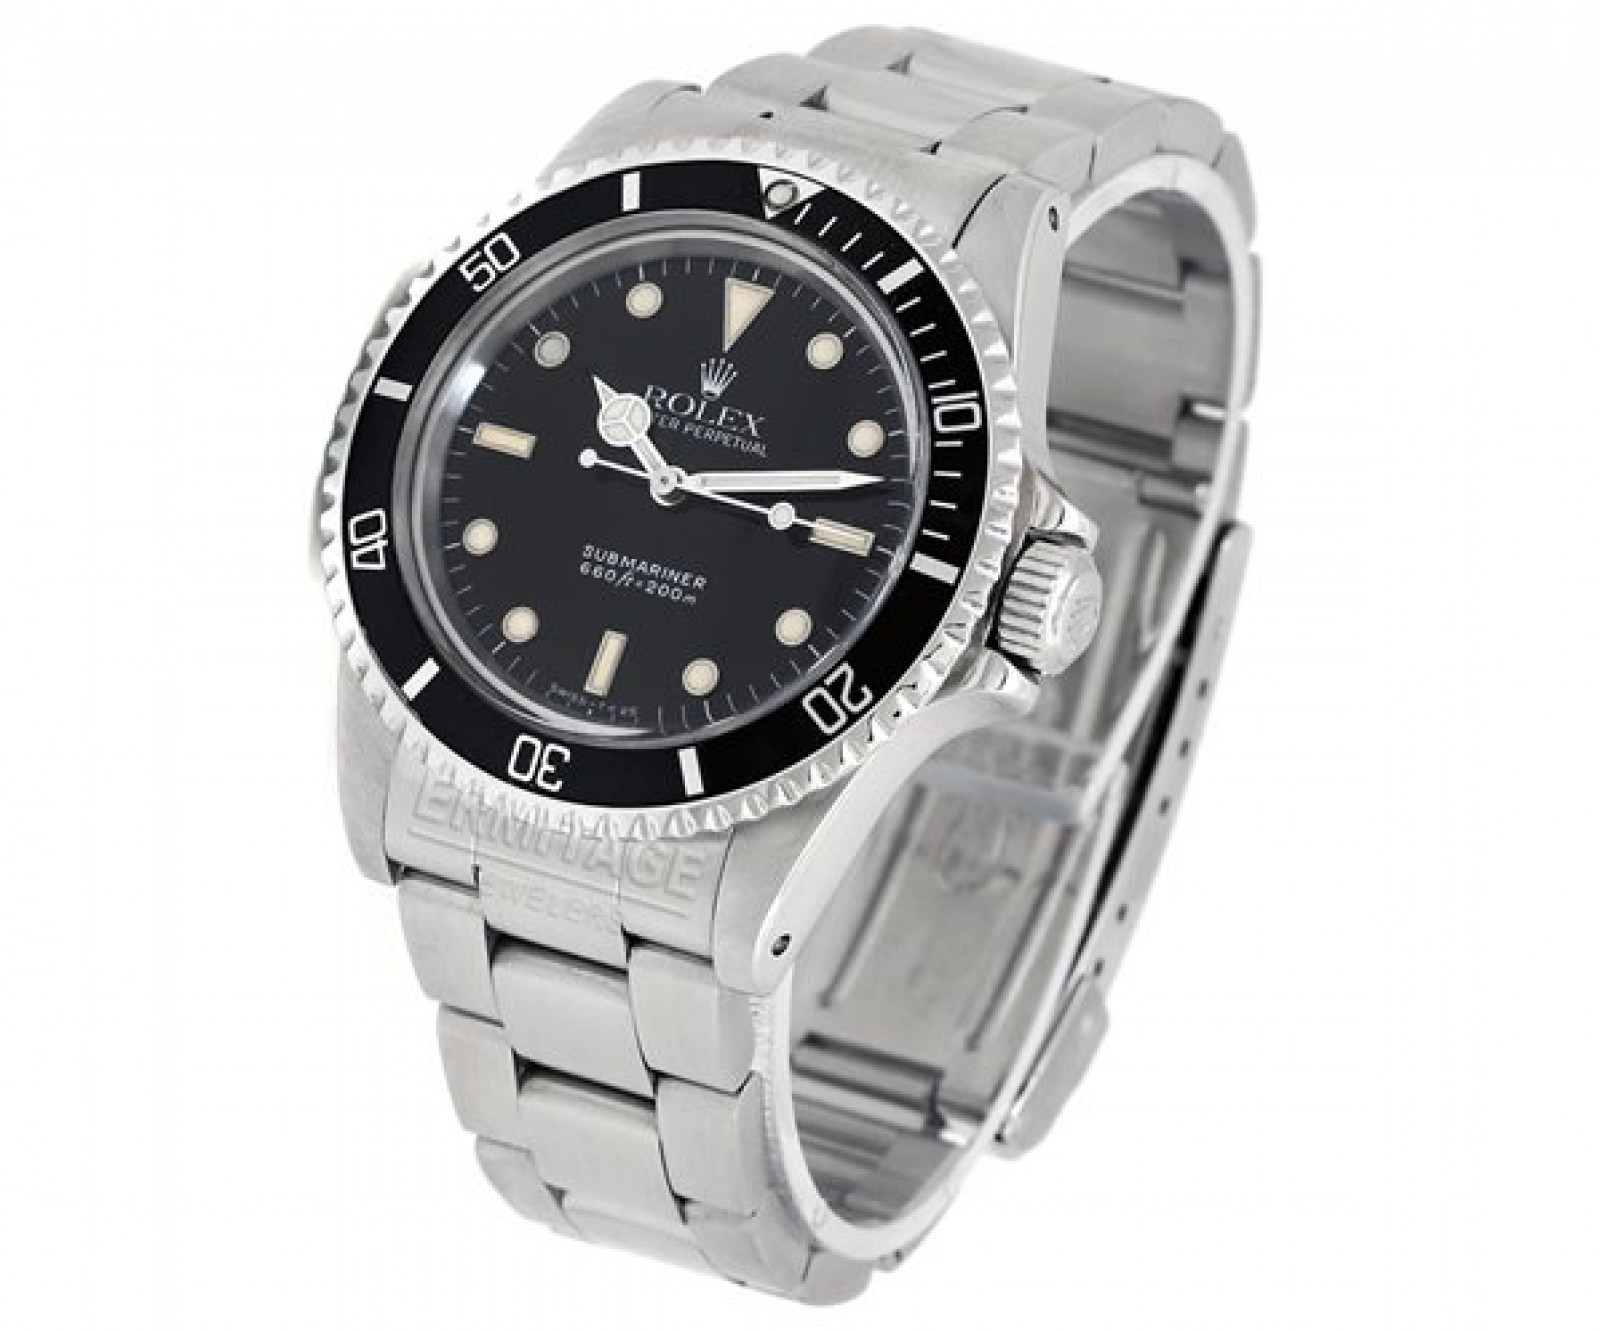 Vintage Rolex Submariner 5513 Steel 1989 40 mm